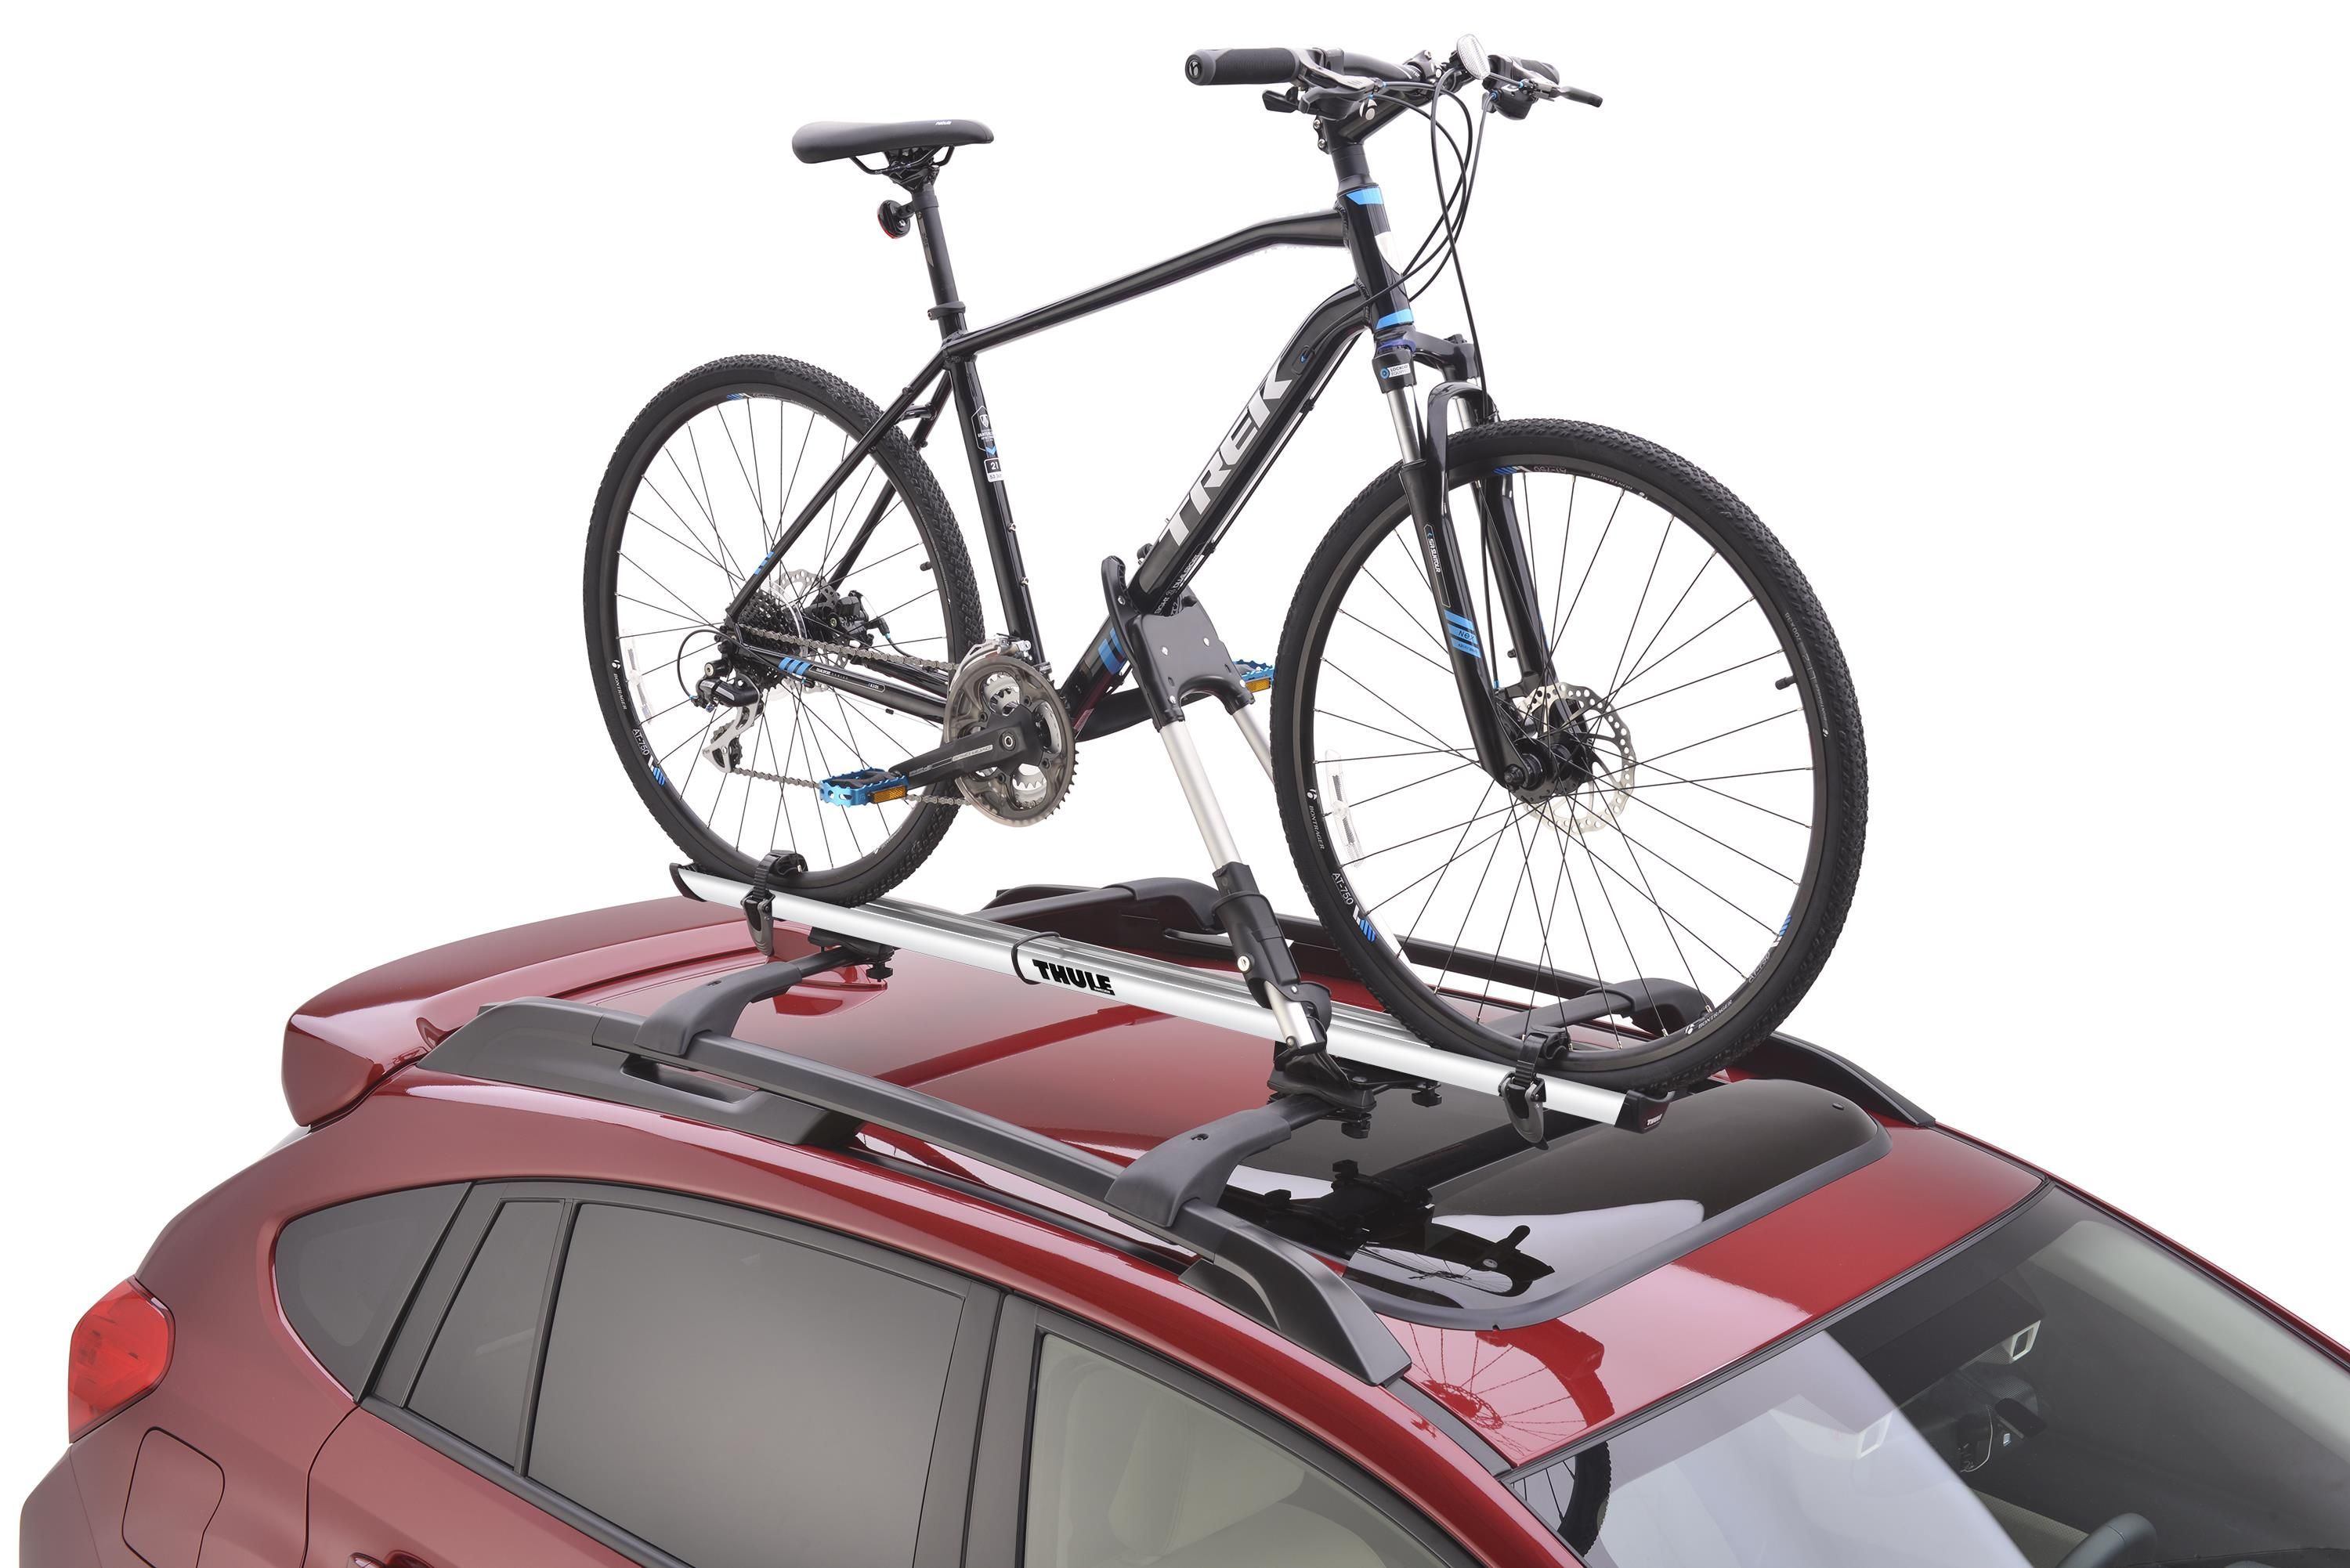 2017 Subaru Outback Soa567b020 Thule Bike Carrier Roof Mounted Subaru Impreza Subaru Impreza In 2020 Thule Bike Carrier Mitsubishi Lancer Evolution Subaru Outback